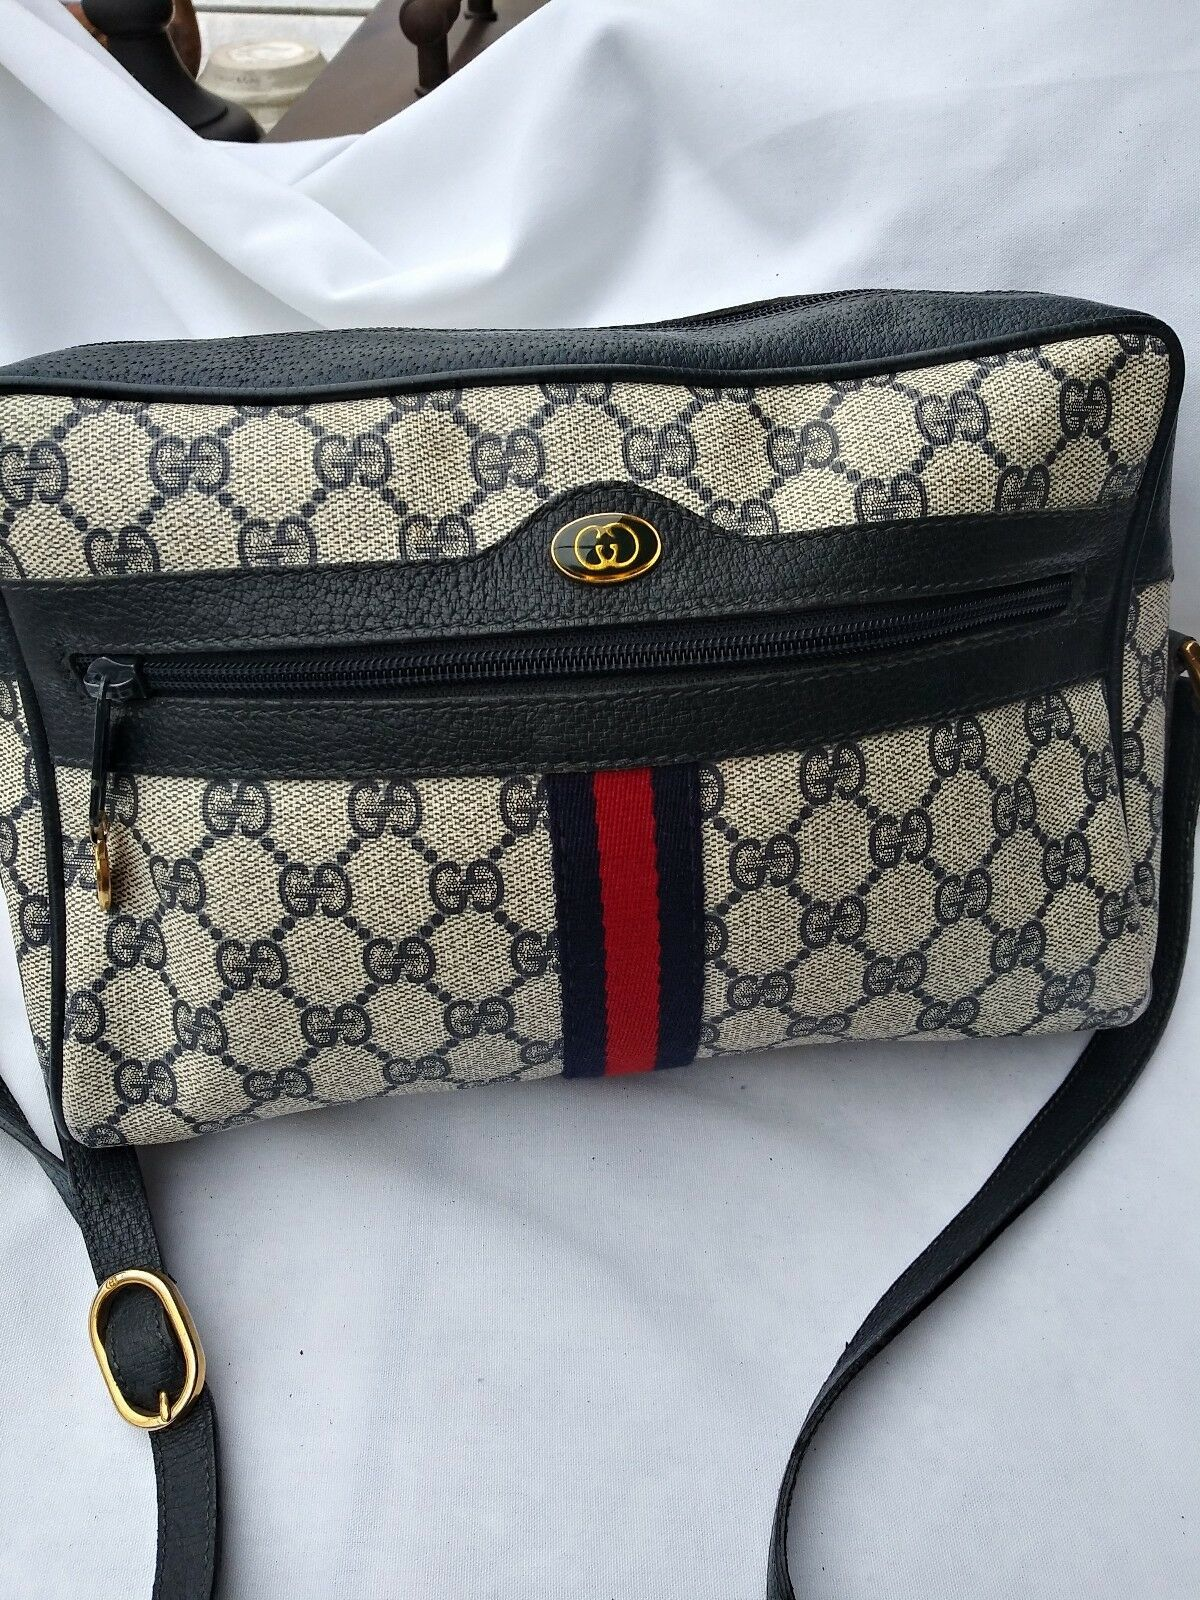 9906b9f2f621 #FORSALE Vintage gucci crossbody bag. Made in Italy. Blue. Excellent on  outside. - $192